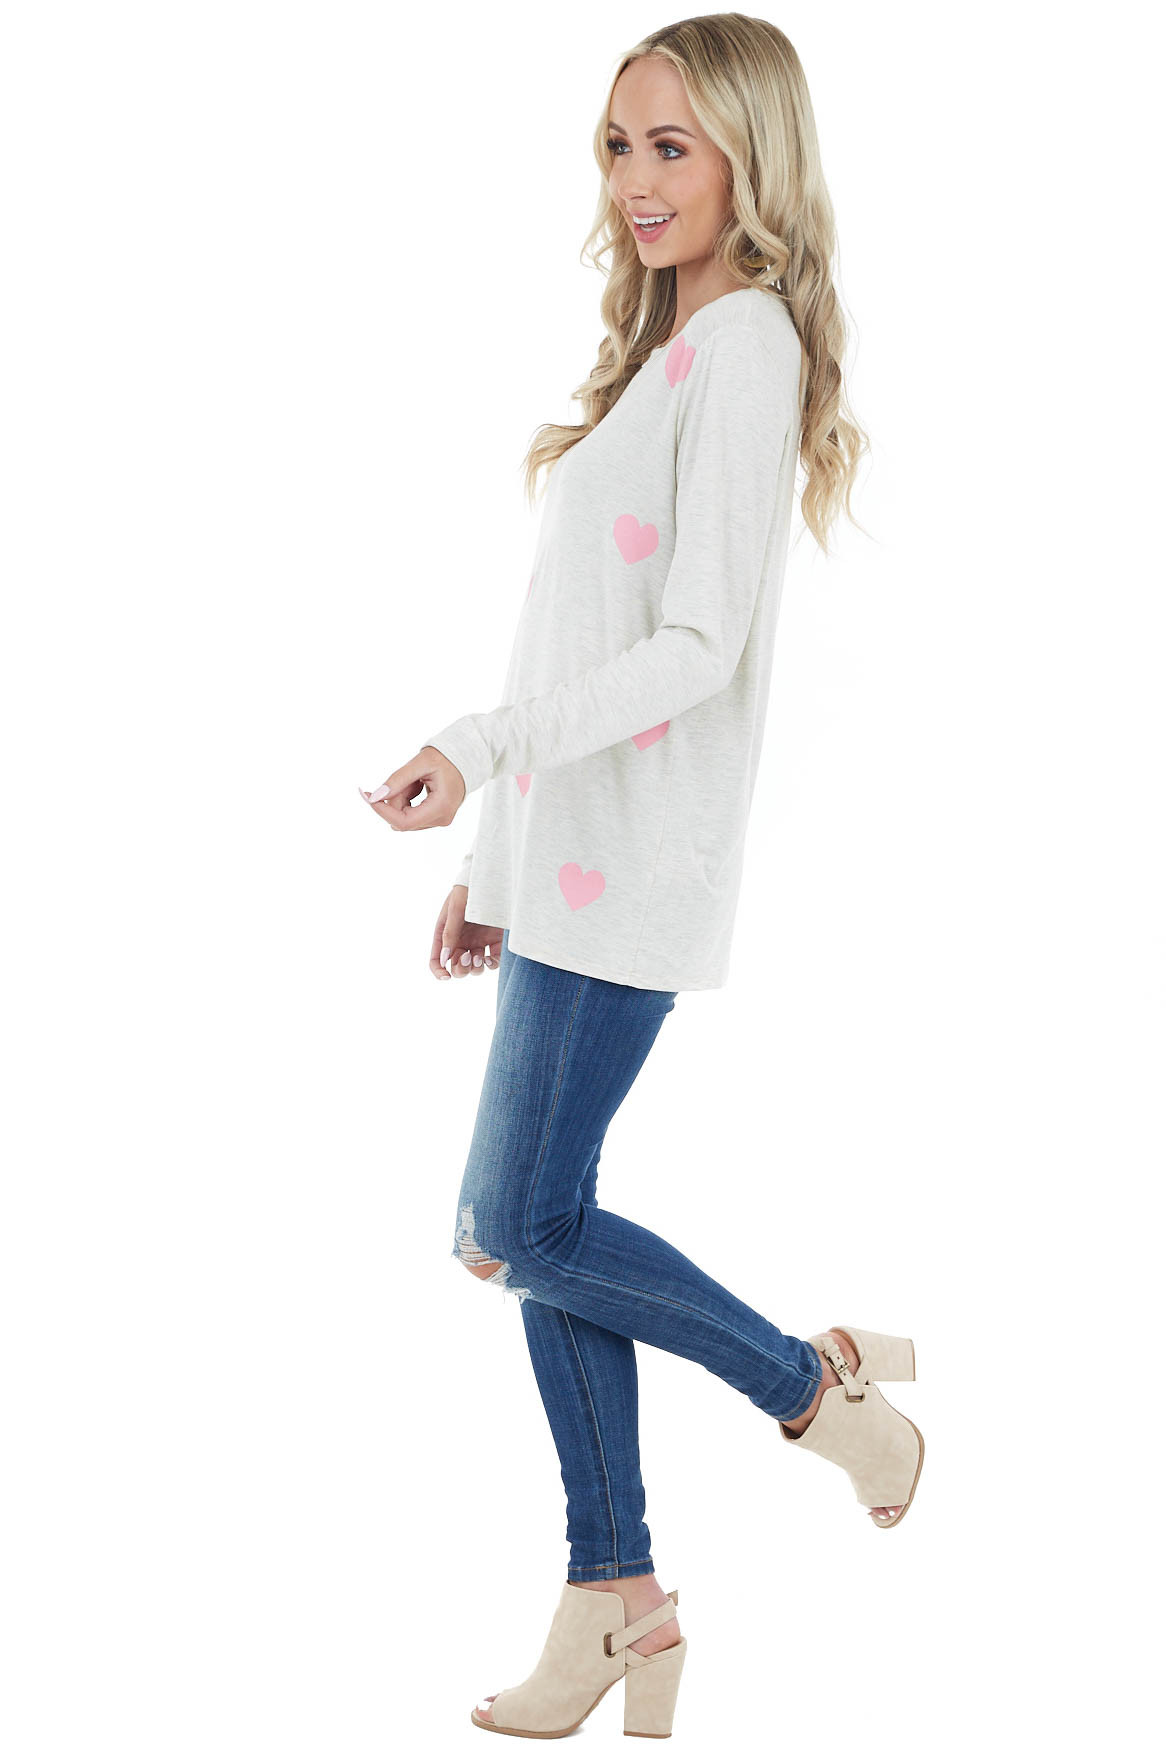 Oatmeal Long Sleeve Knit Top with Bright Pink Heart Pattern